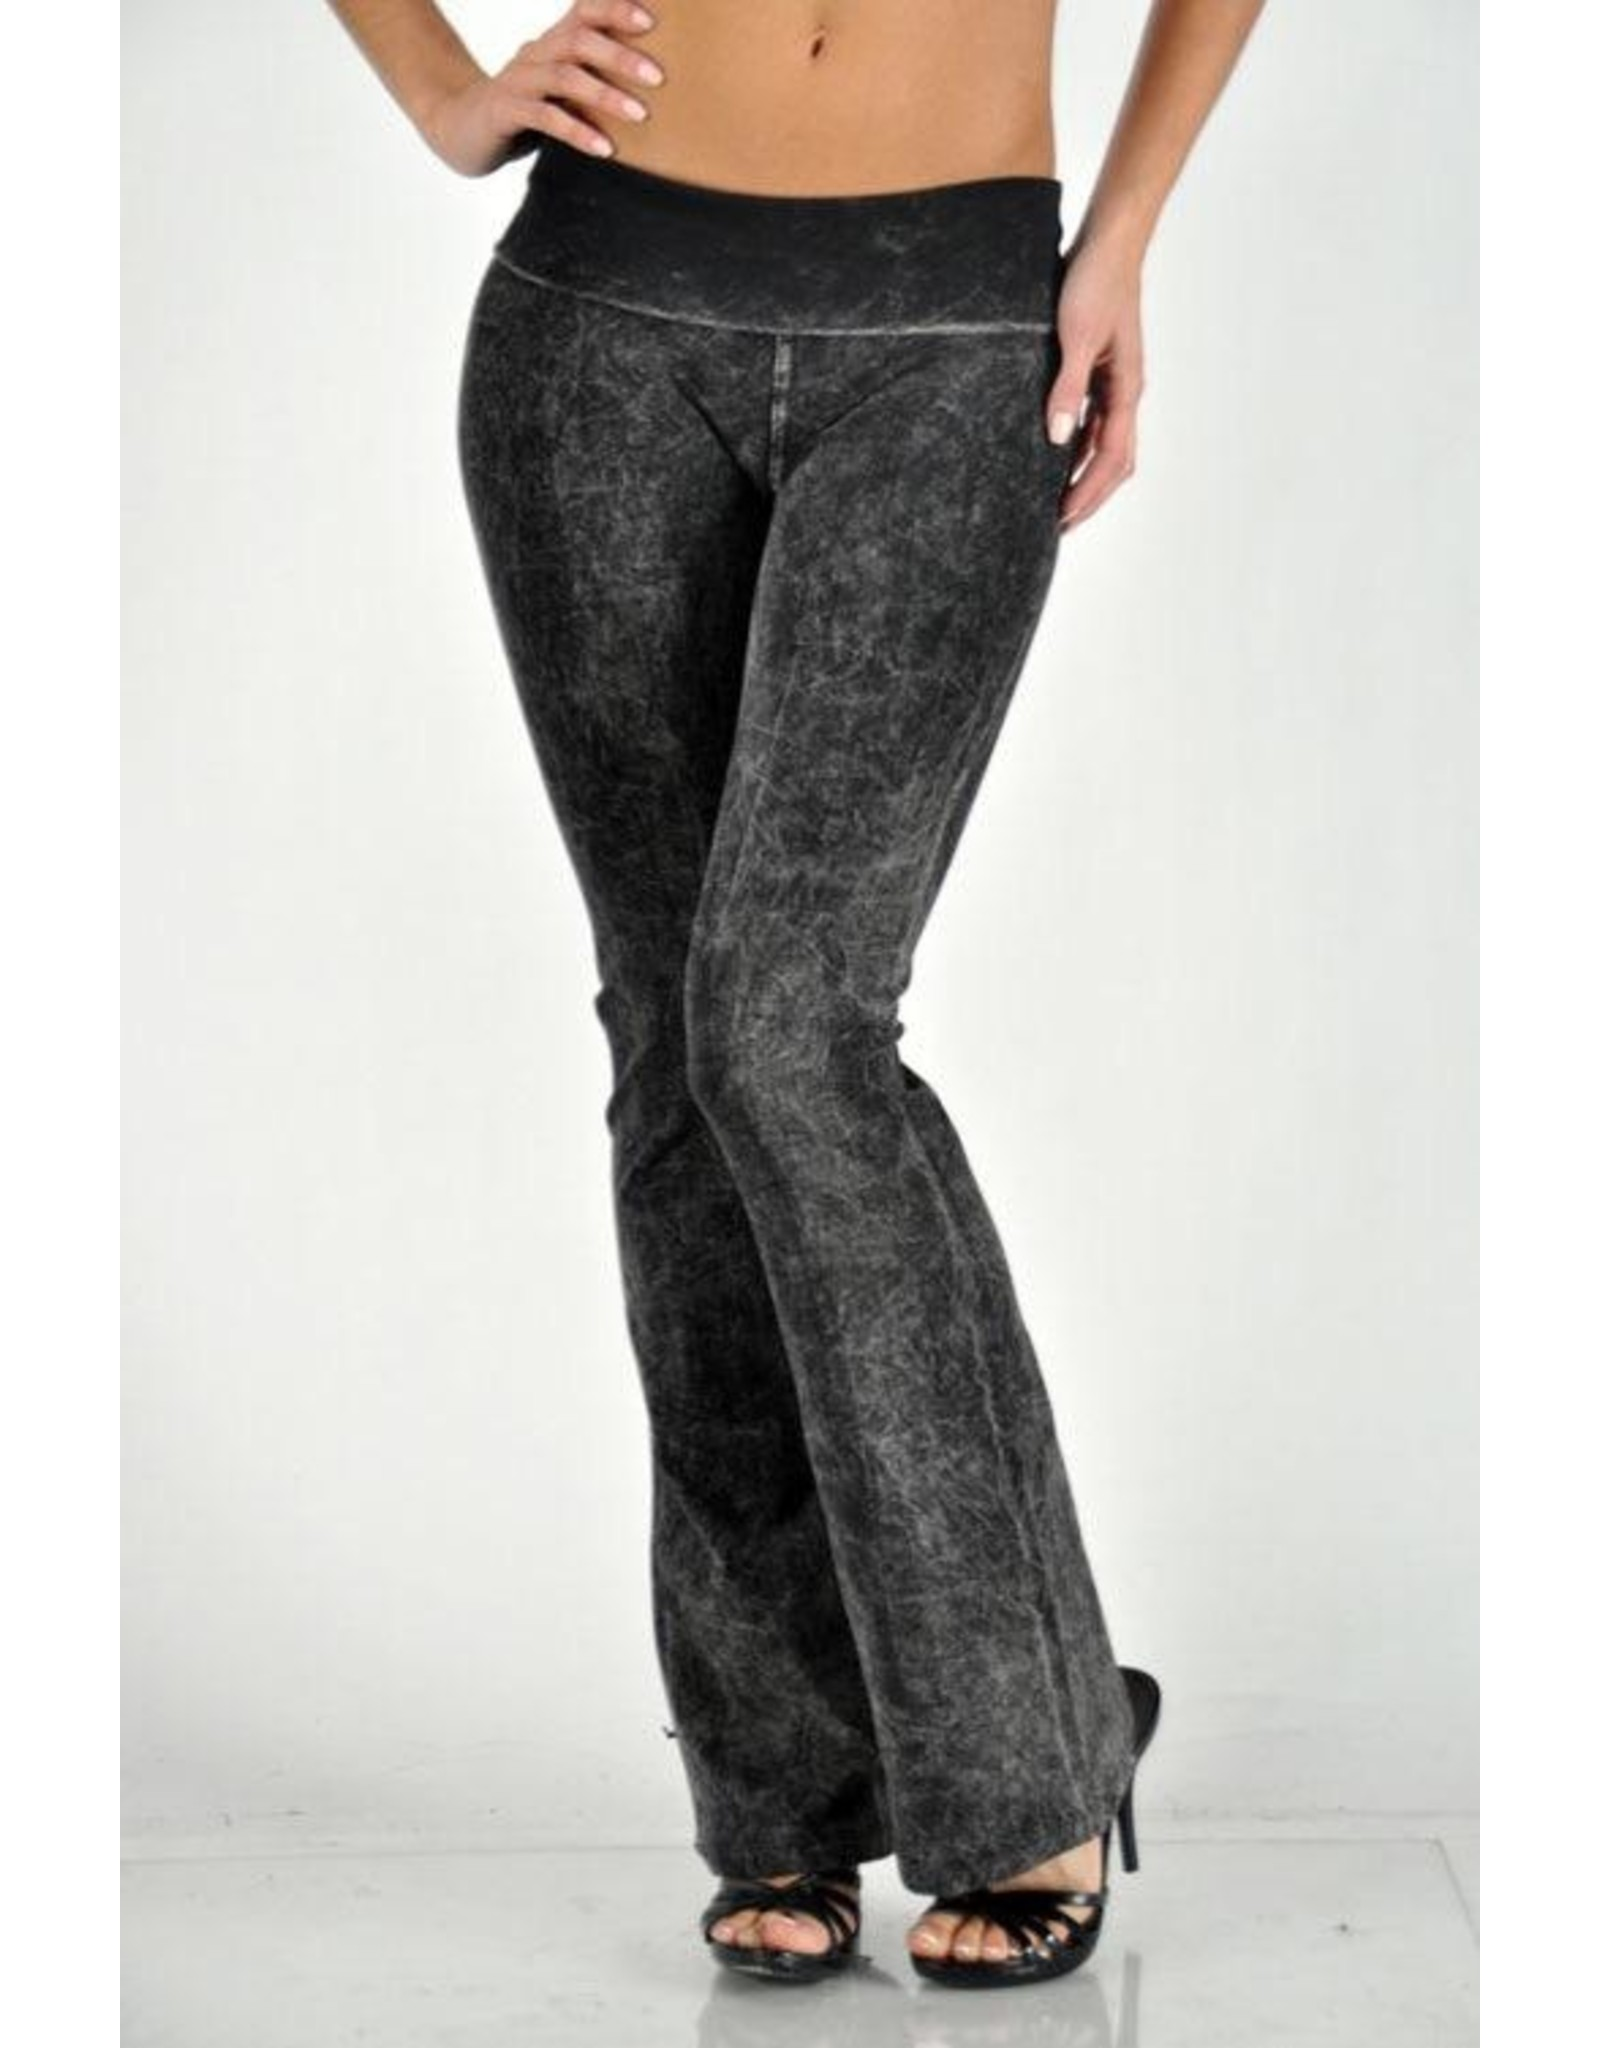 Mineral Wash Yoga Pant with Bell